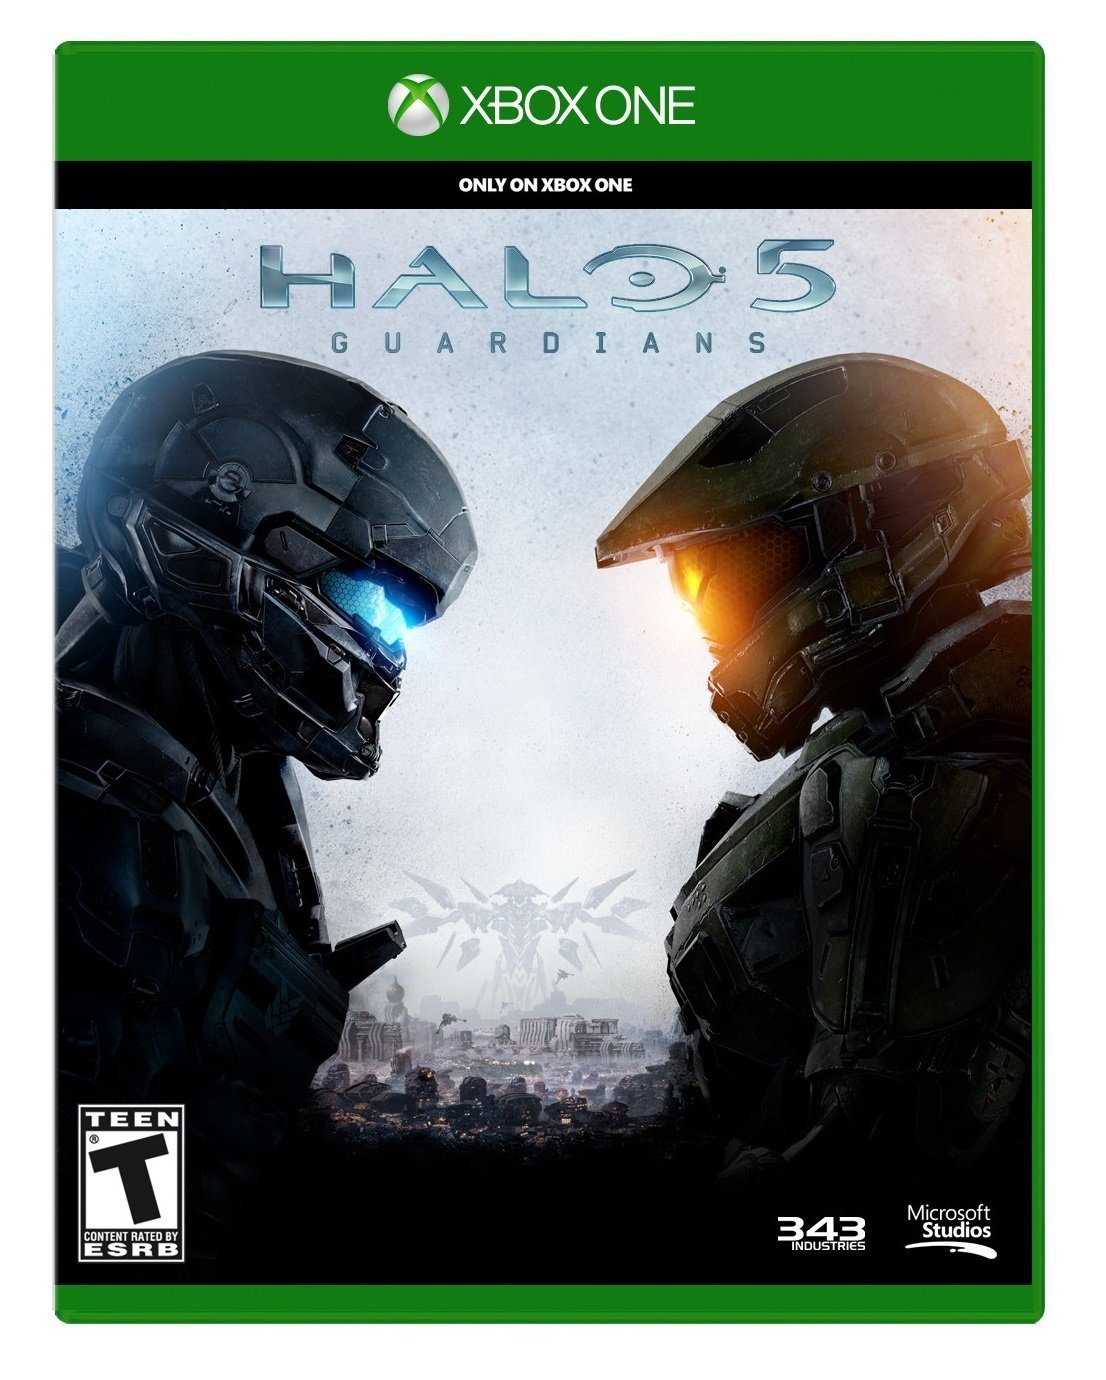 Halo 5: Guardians (Xbox One) Review 7